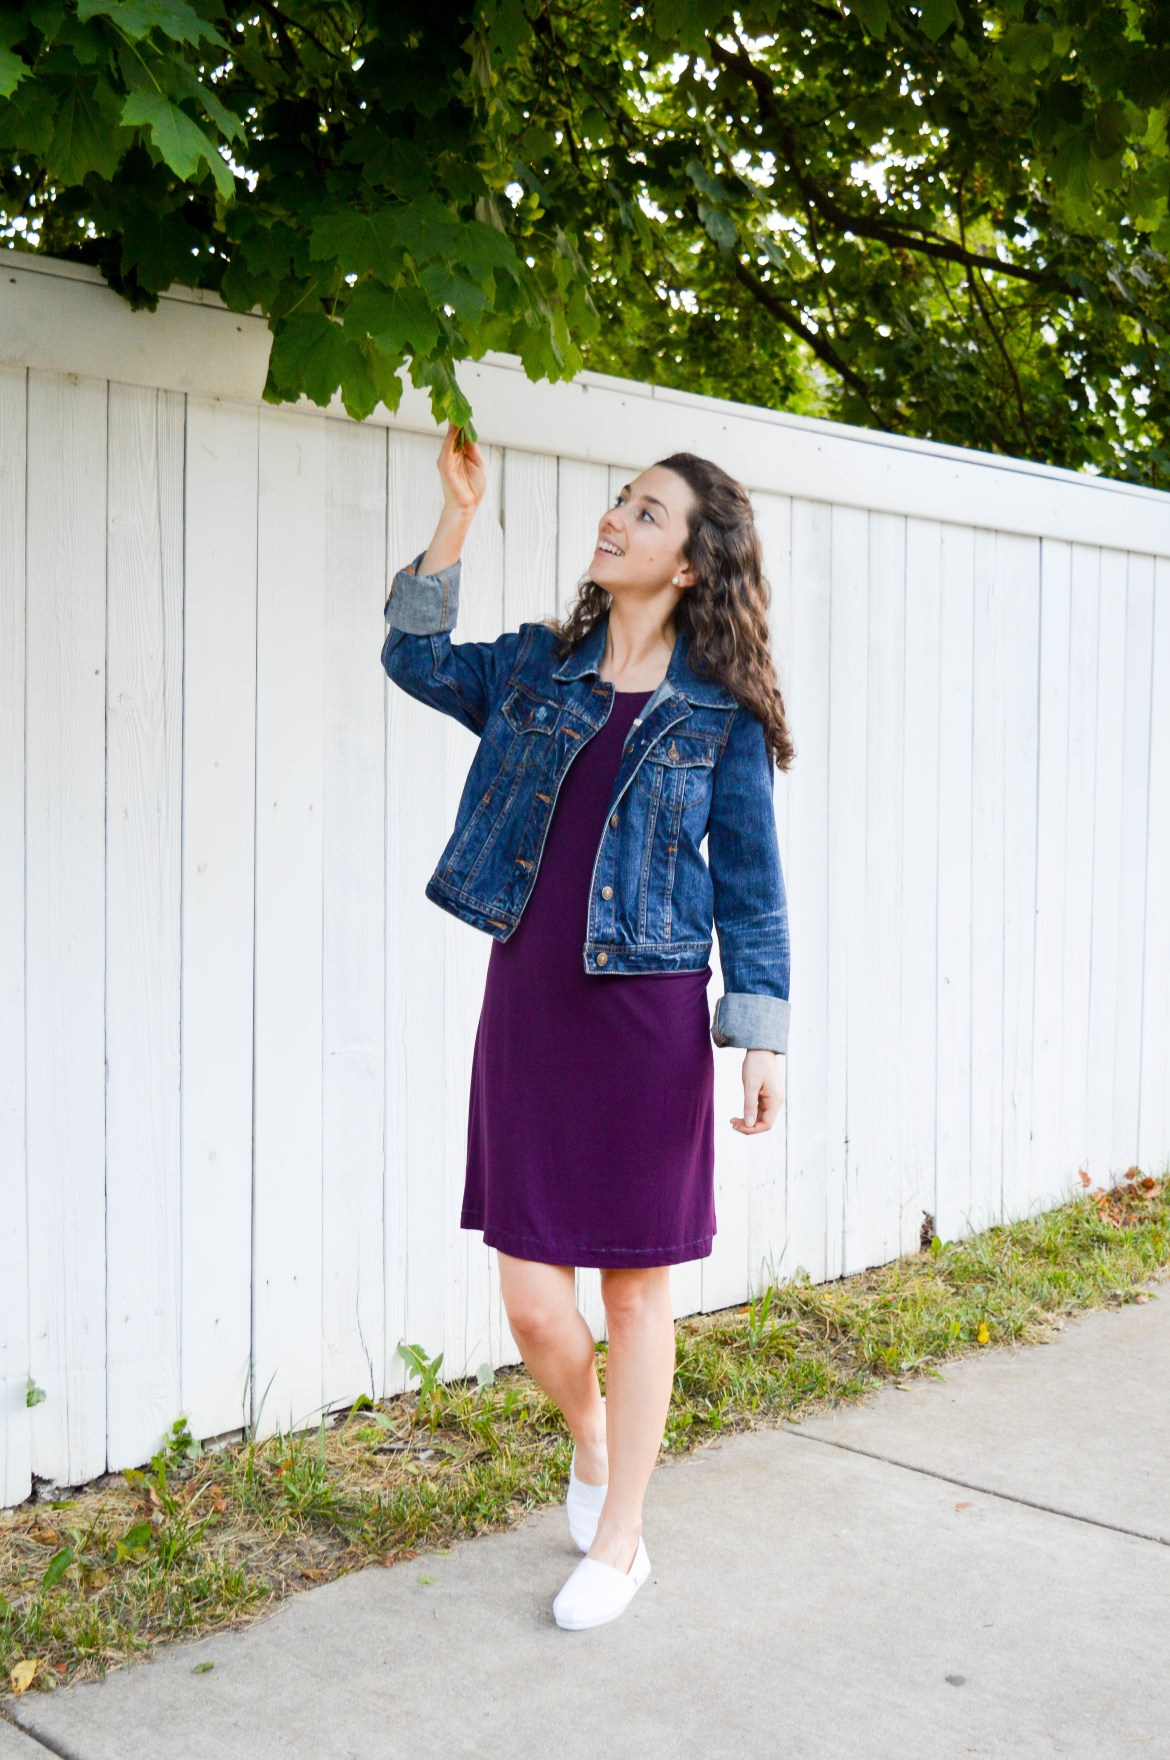 Knit dress + jean jacket + white sneakers | Casual, versatile weekend outfit